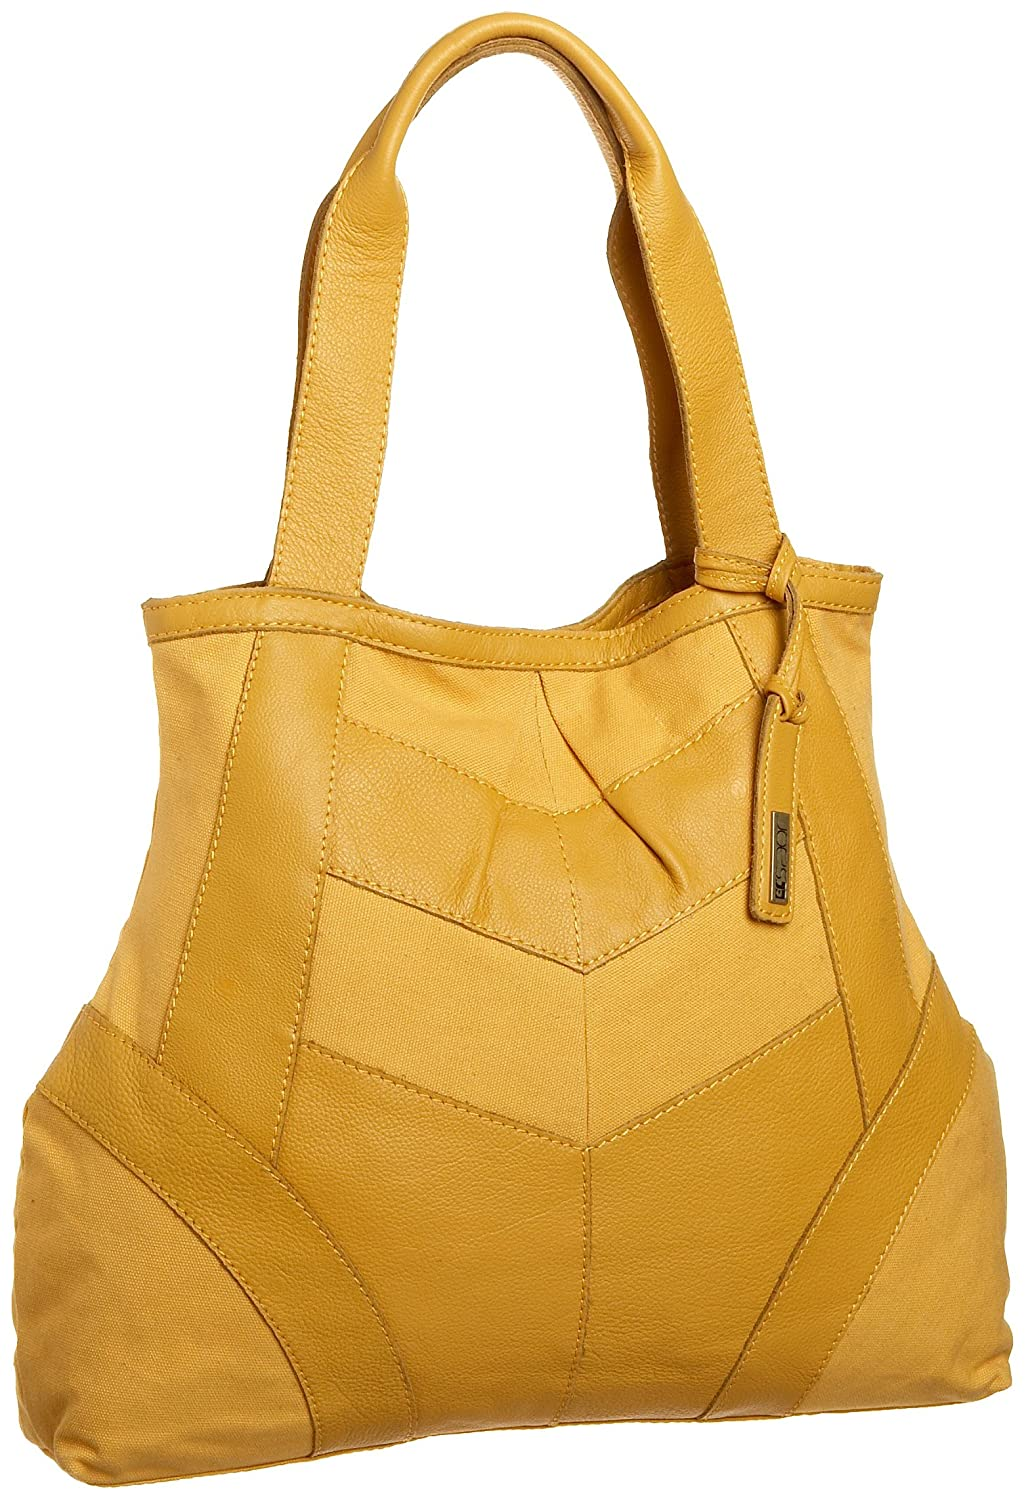 Joe s Jeans Katie Large Tote Free Overnight Shipping Return Shipping Endless com from endless.com